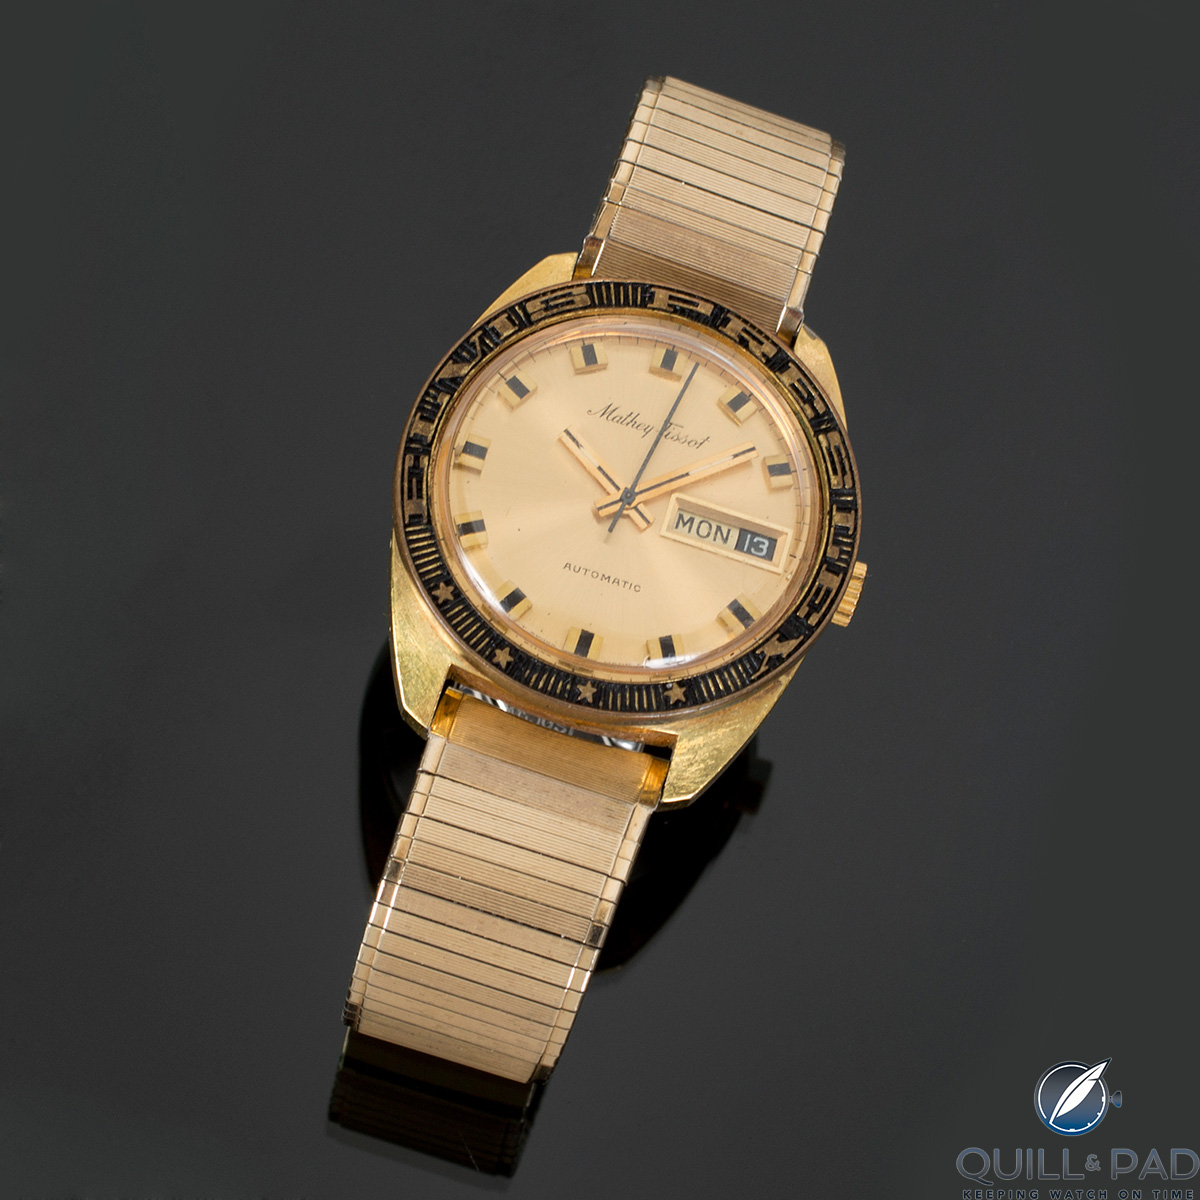 Mathey-Tissot Day-Date once owned by Elvis Presley